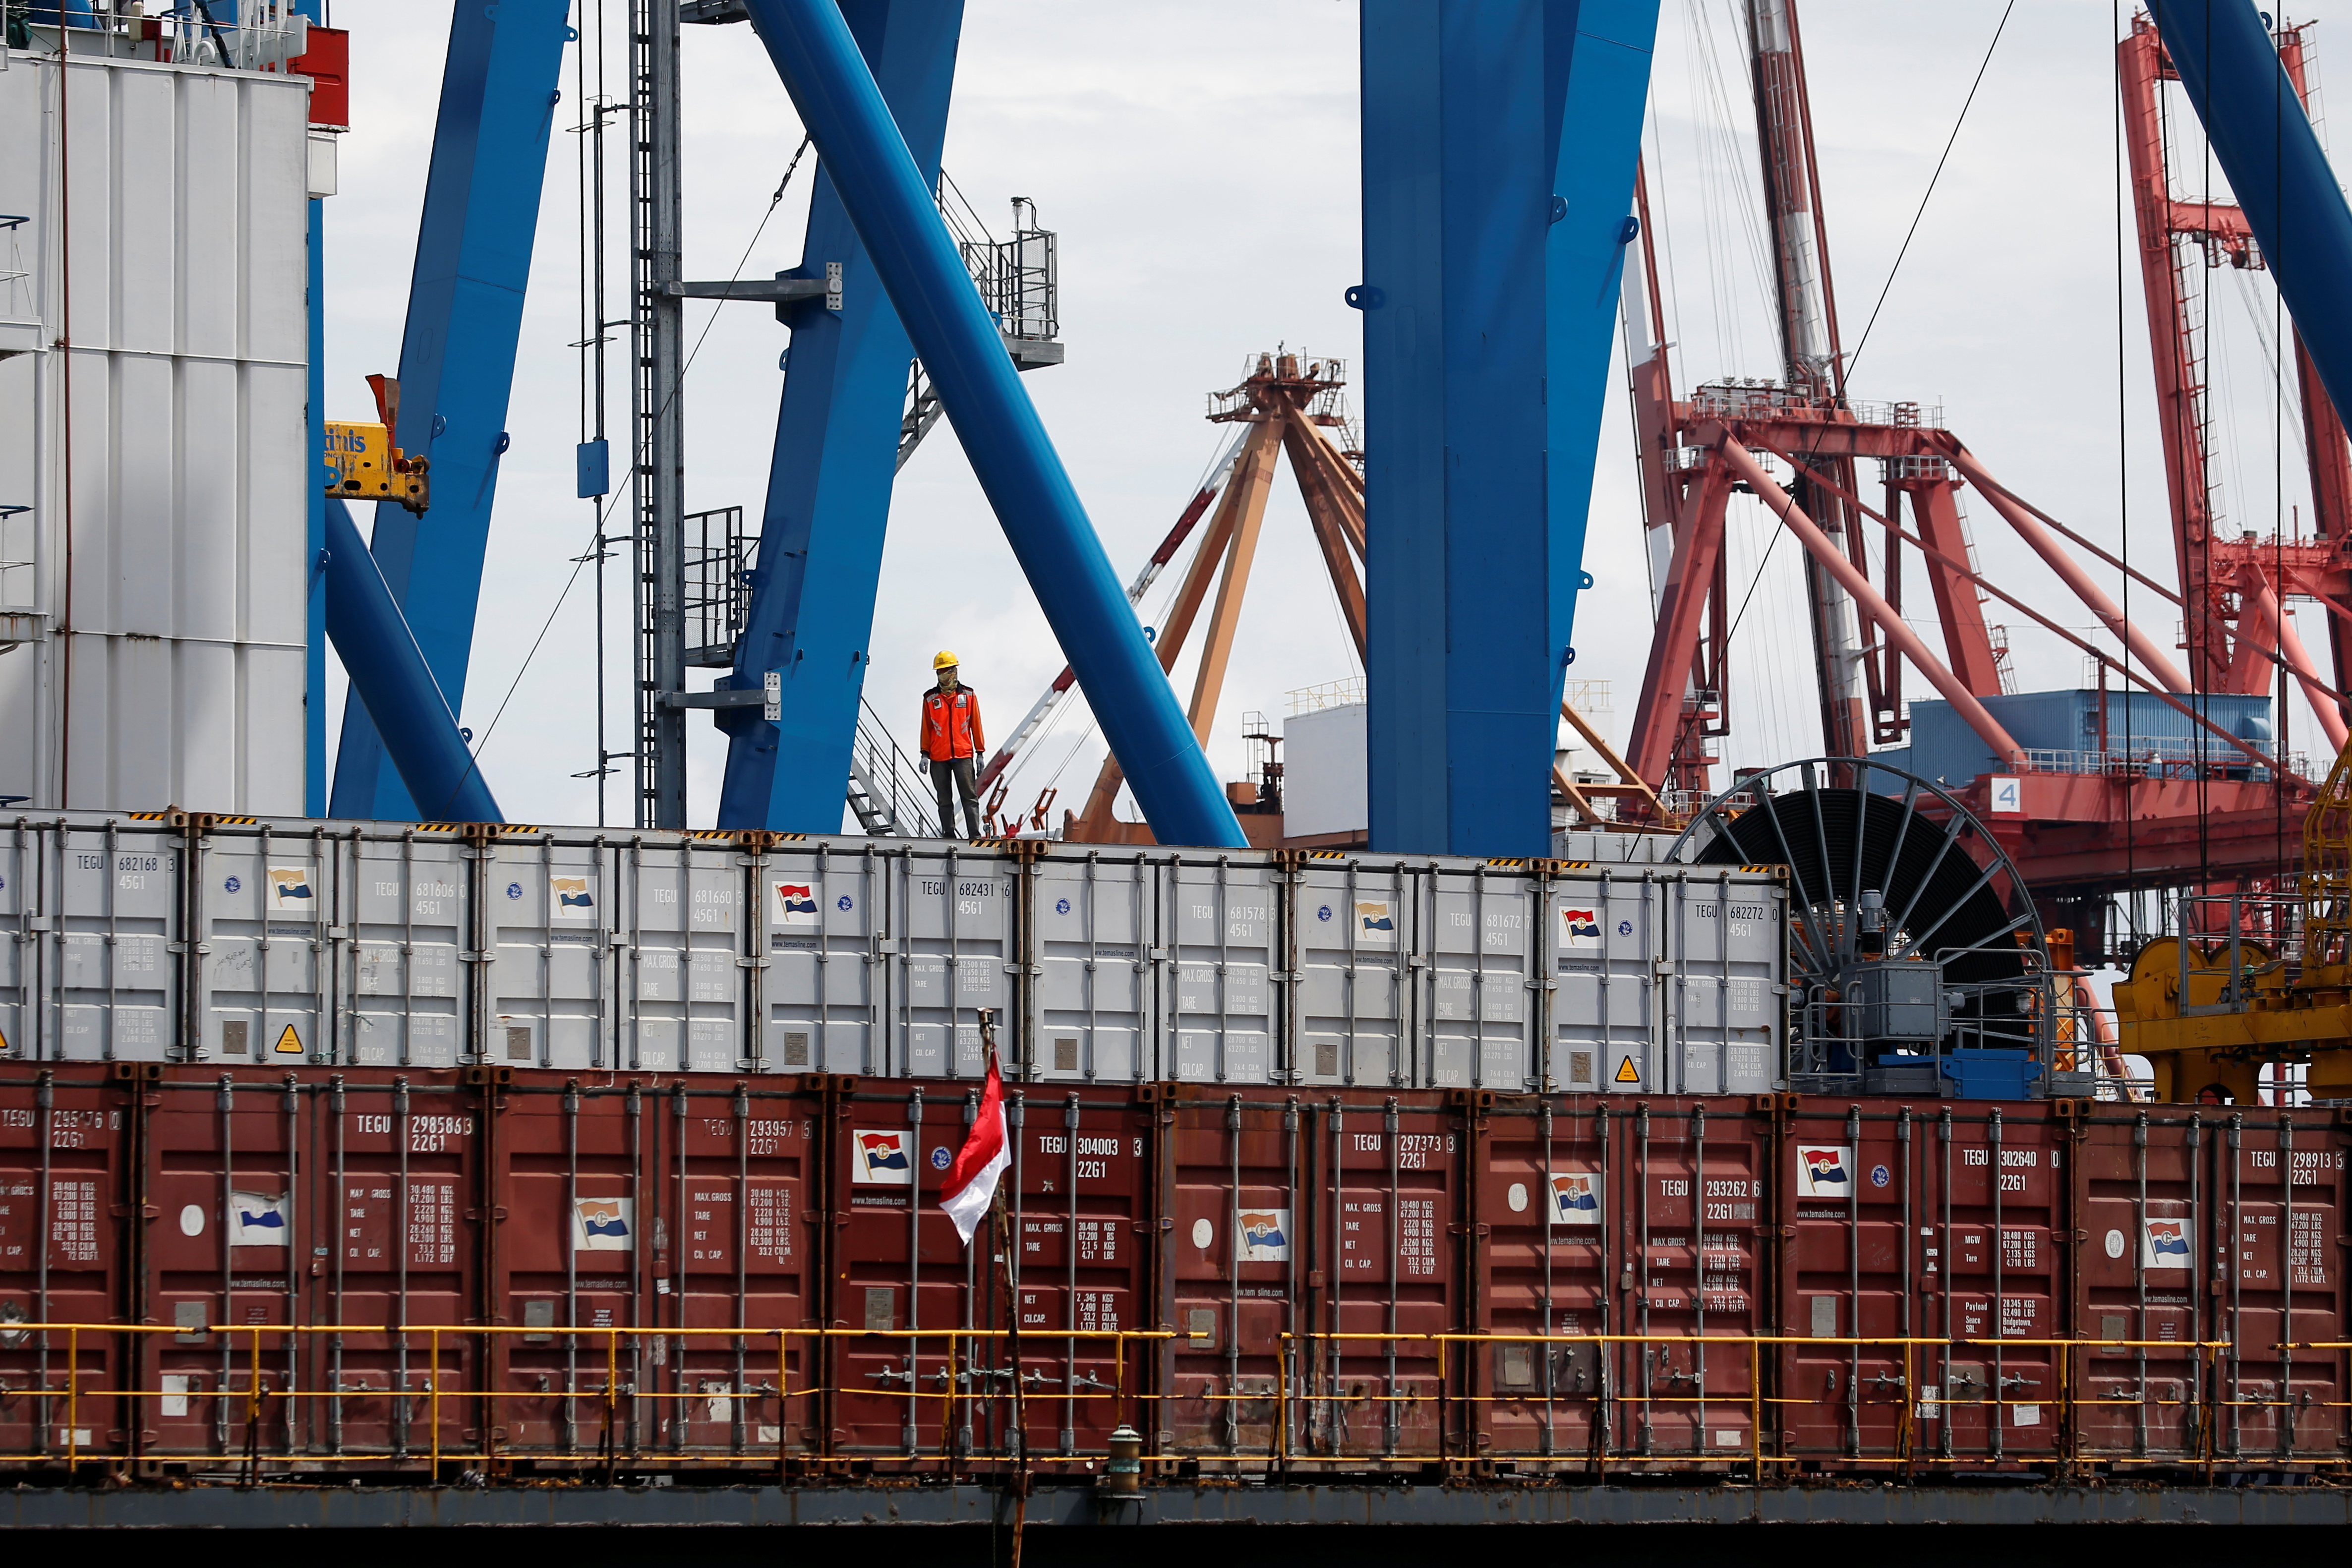 A worker stands on a container at Tanjung Priok Port in Jakarta, Indonesia, January 11, 2021. Picture taken January 11, 2021. REUTERS/Willy Kurniawan